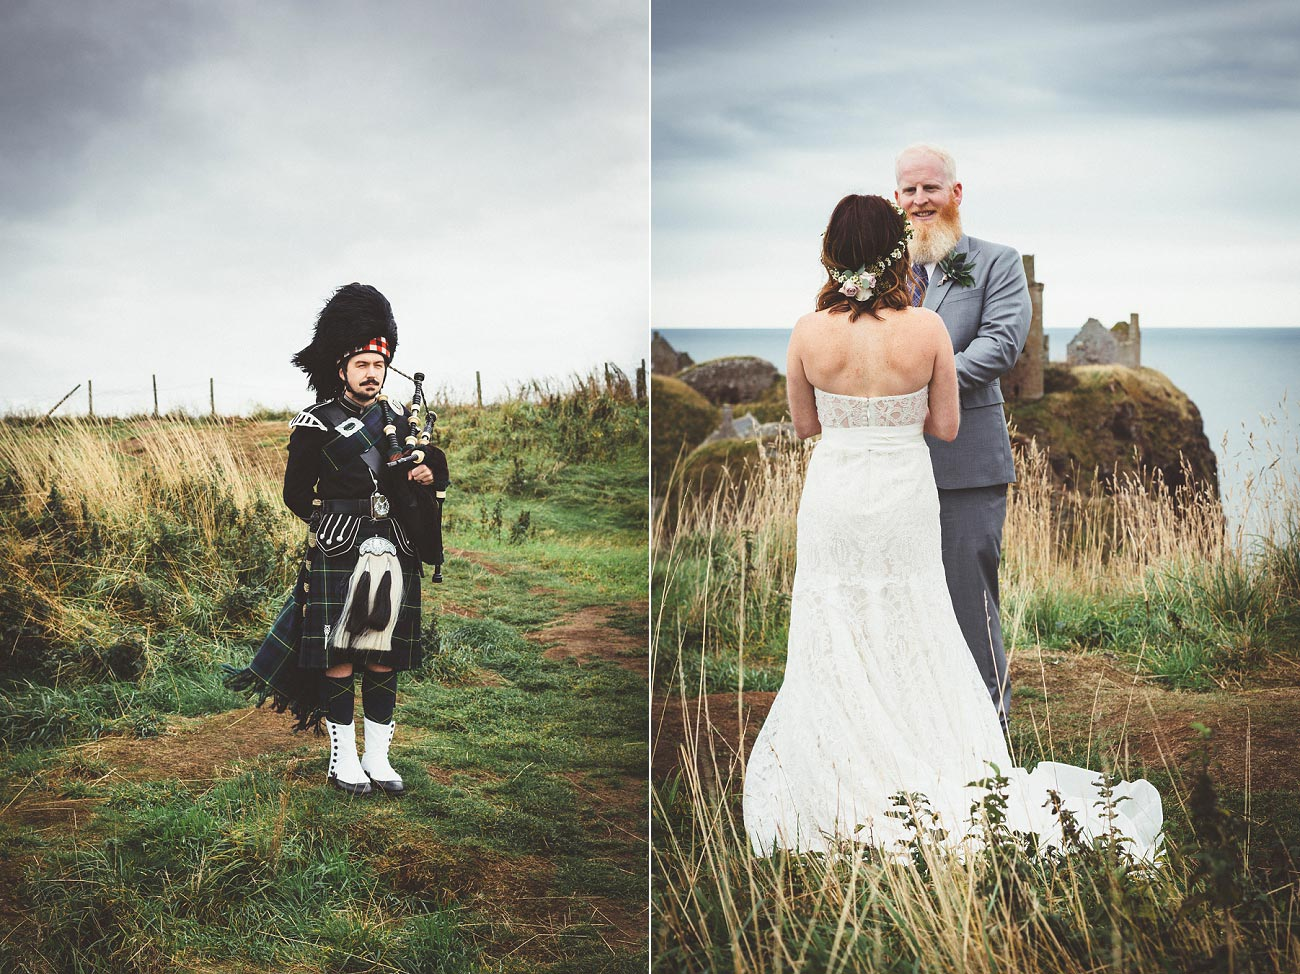 dunnottar castle elopement wedding photographer scotland scottish highlands abderdeenshire aj 0014